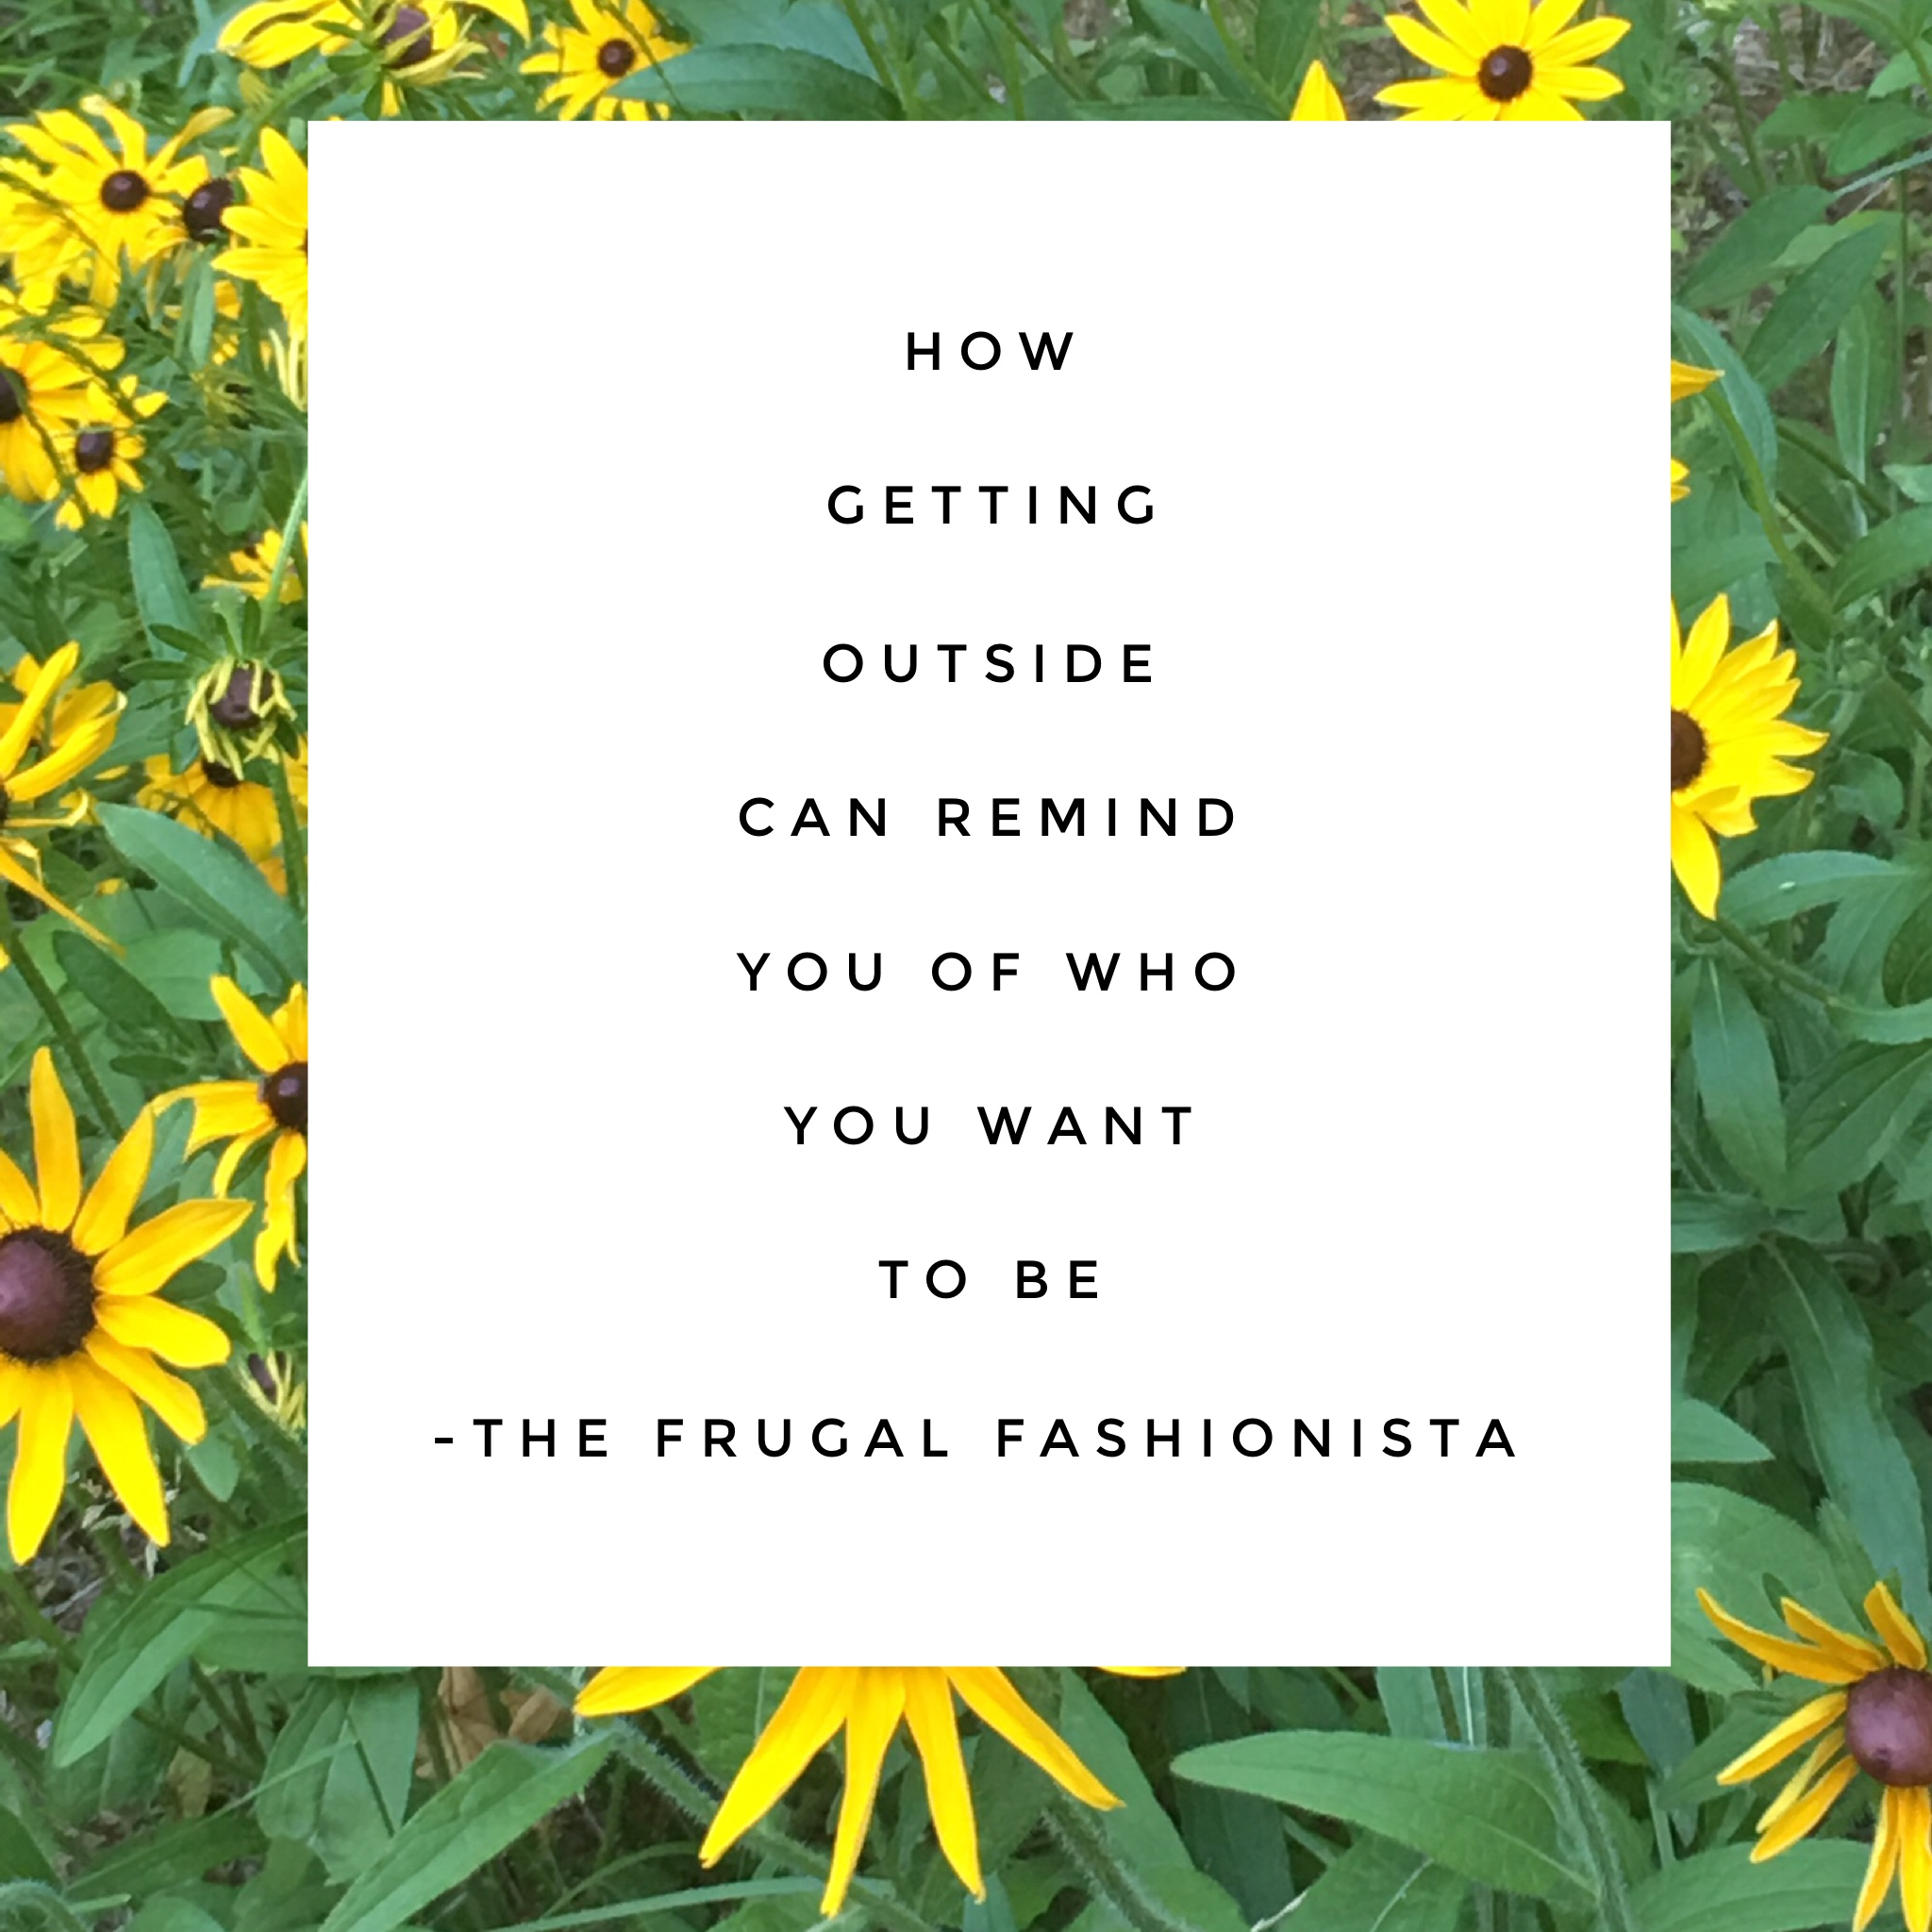 The Frugal Fashionista: How Getting Outside Can Remind You of Who You Want to Be